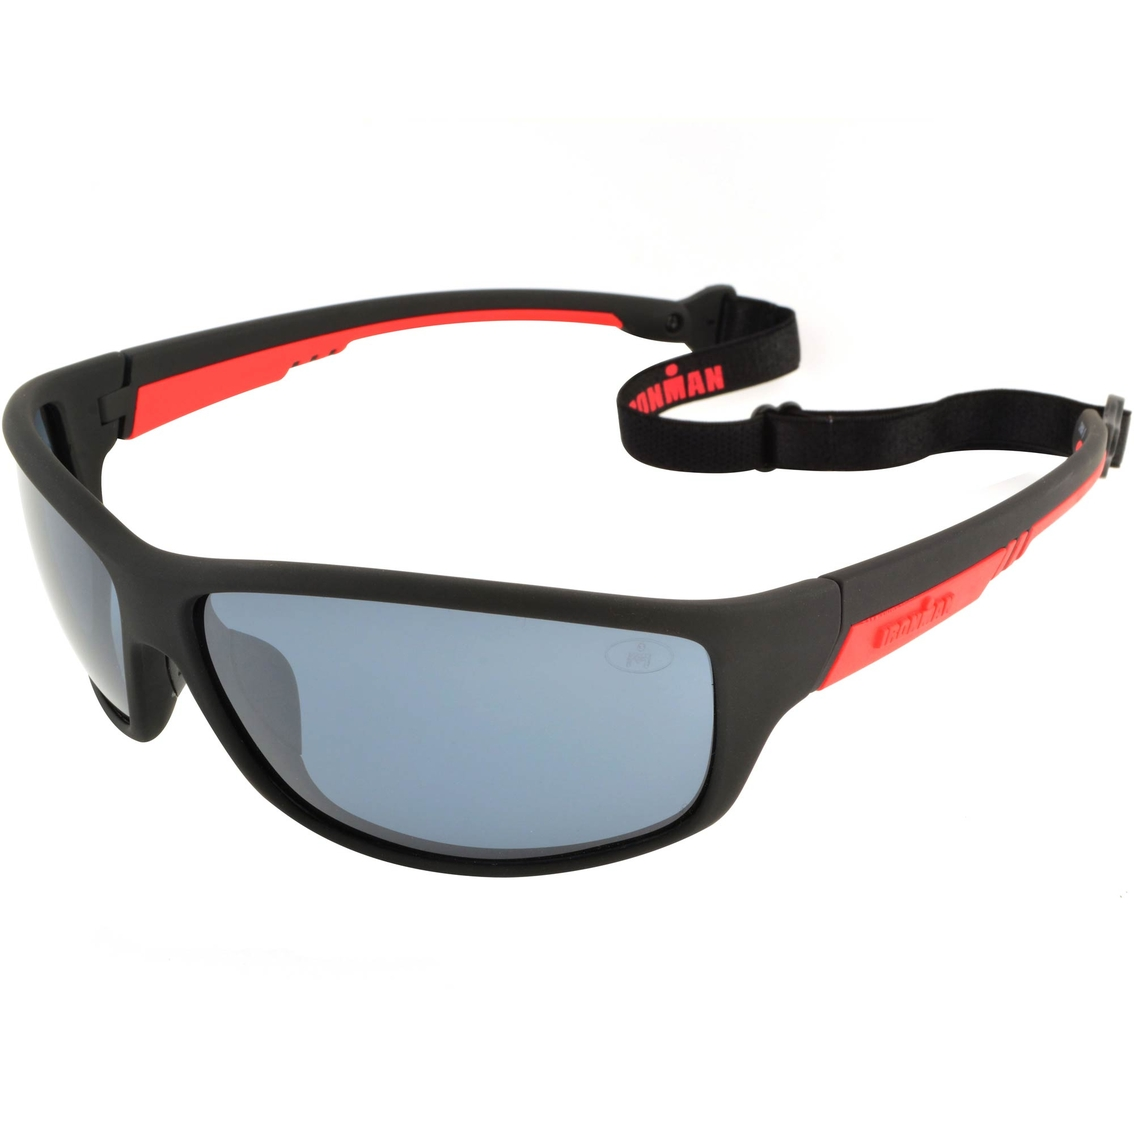 89880cd65f7f Foster Grant Ironman Precision Polarized Sunglasses 10219110.fgx ...